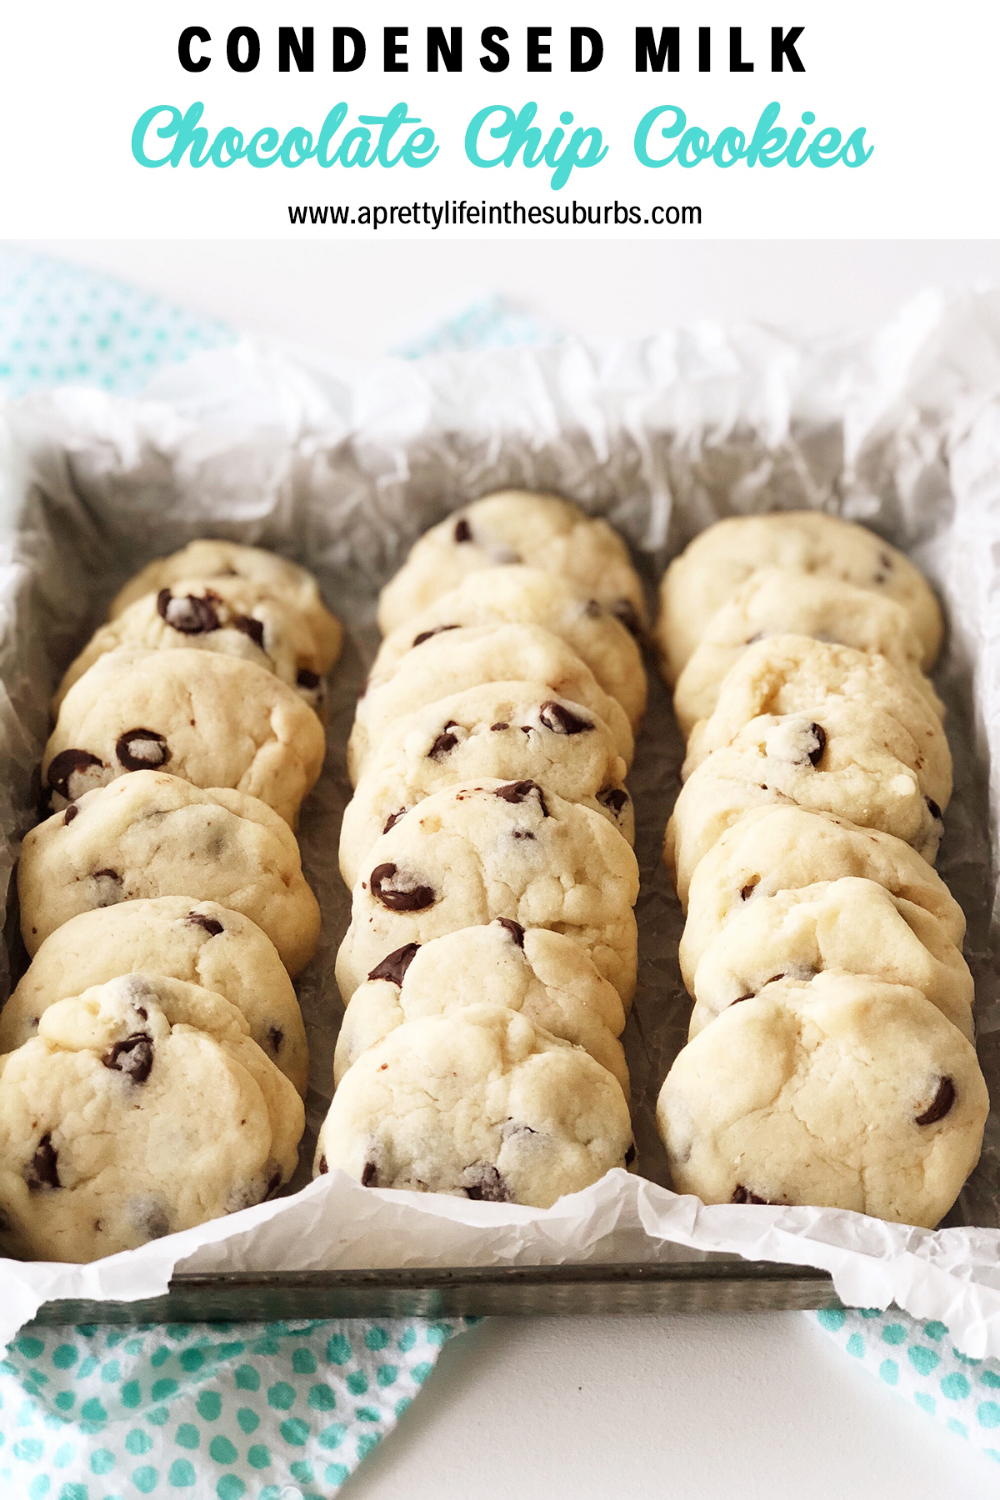 Pin By Corinne Dever On Cookies In 2020 With Images Milk Chocolate Chip Cookies Sweetened Condensed Milk Recipes Milk Recipes Dessert